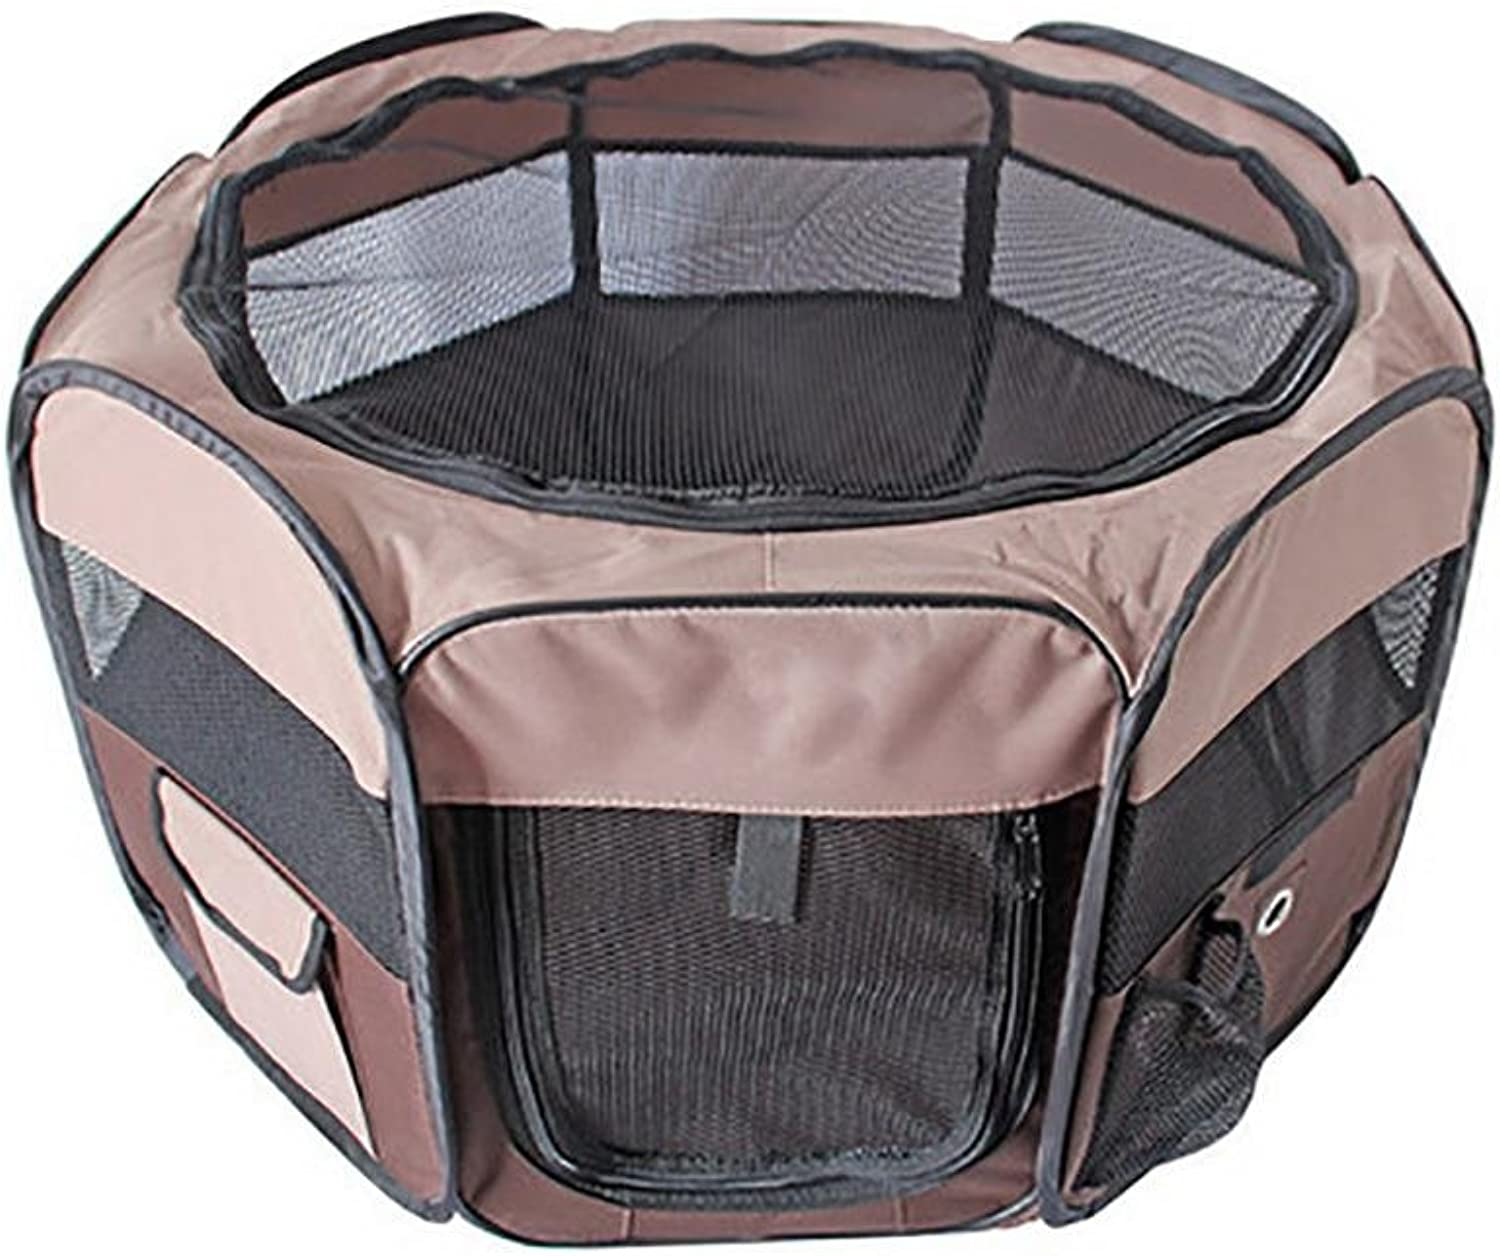 LAMEI Pets Portable Foldable Pet Playpen, Carrying Case & Collapsible Travel Bowl, Indoor Outdoor use, Water resistant